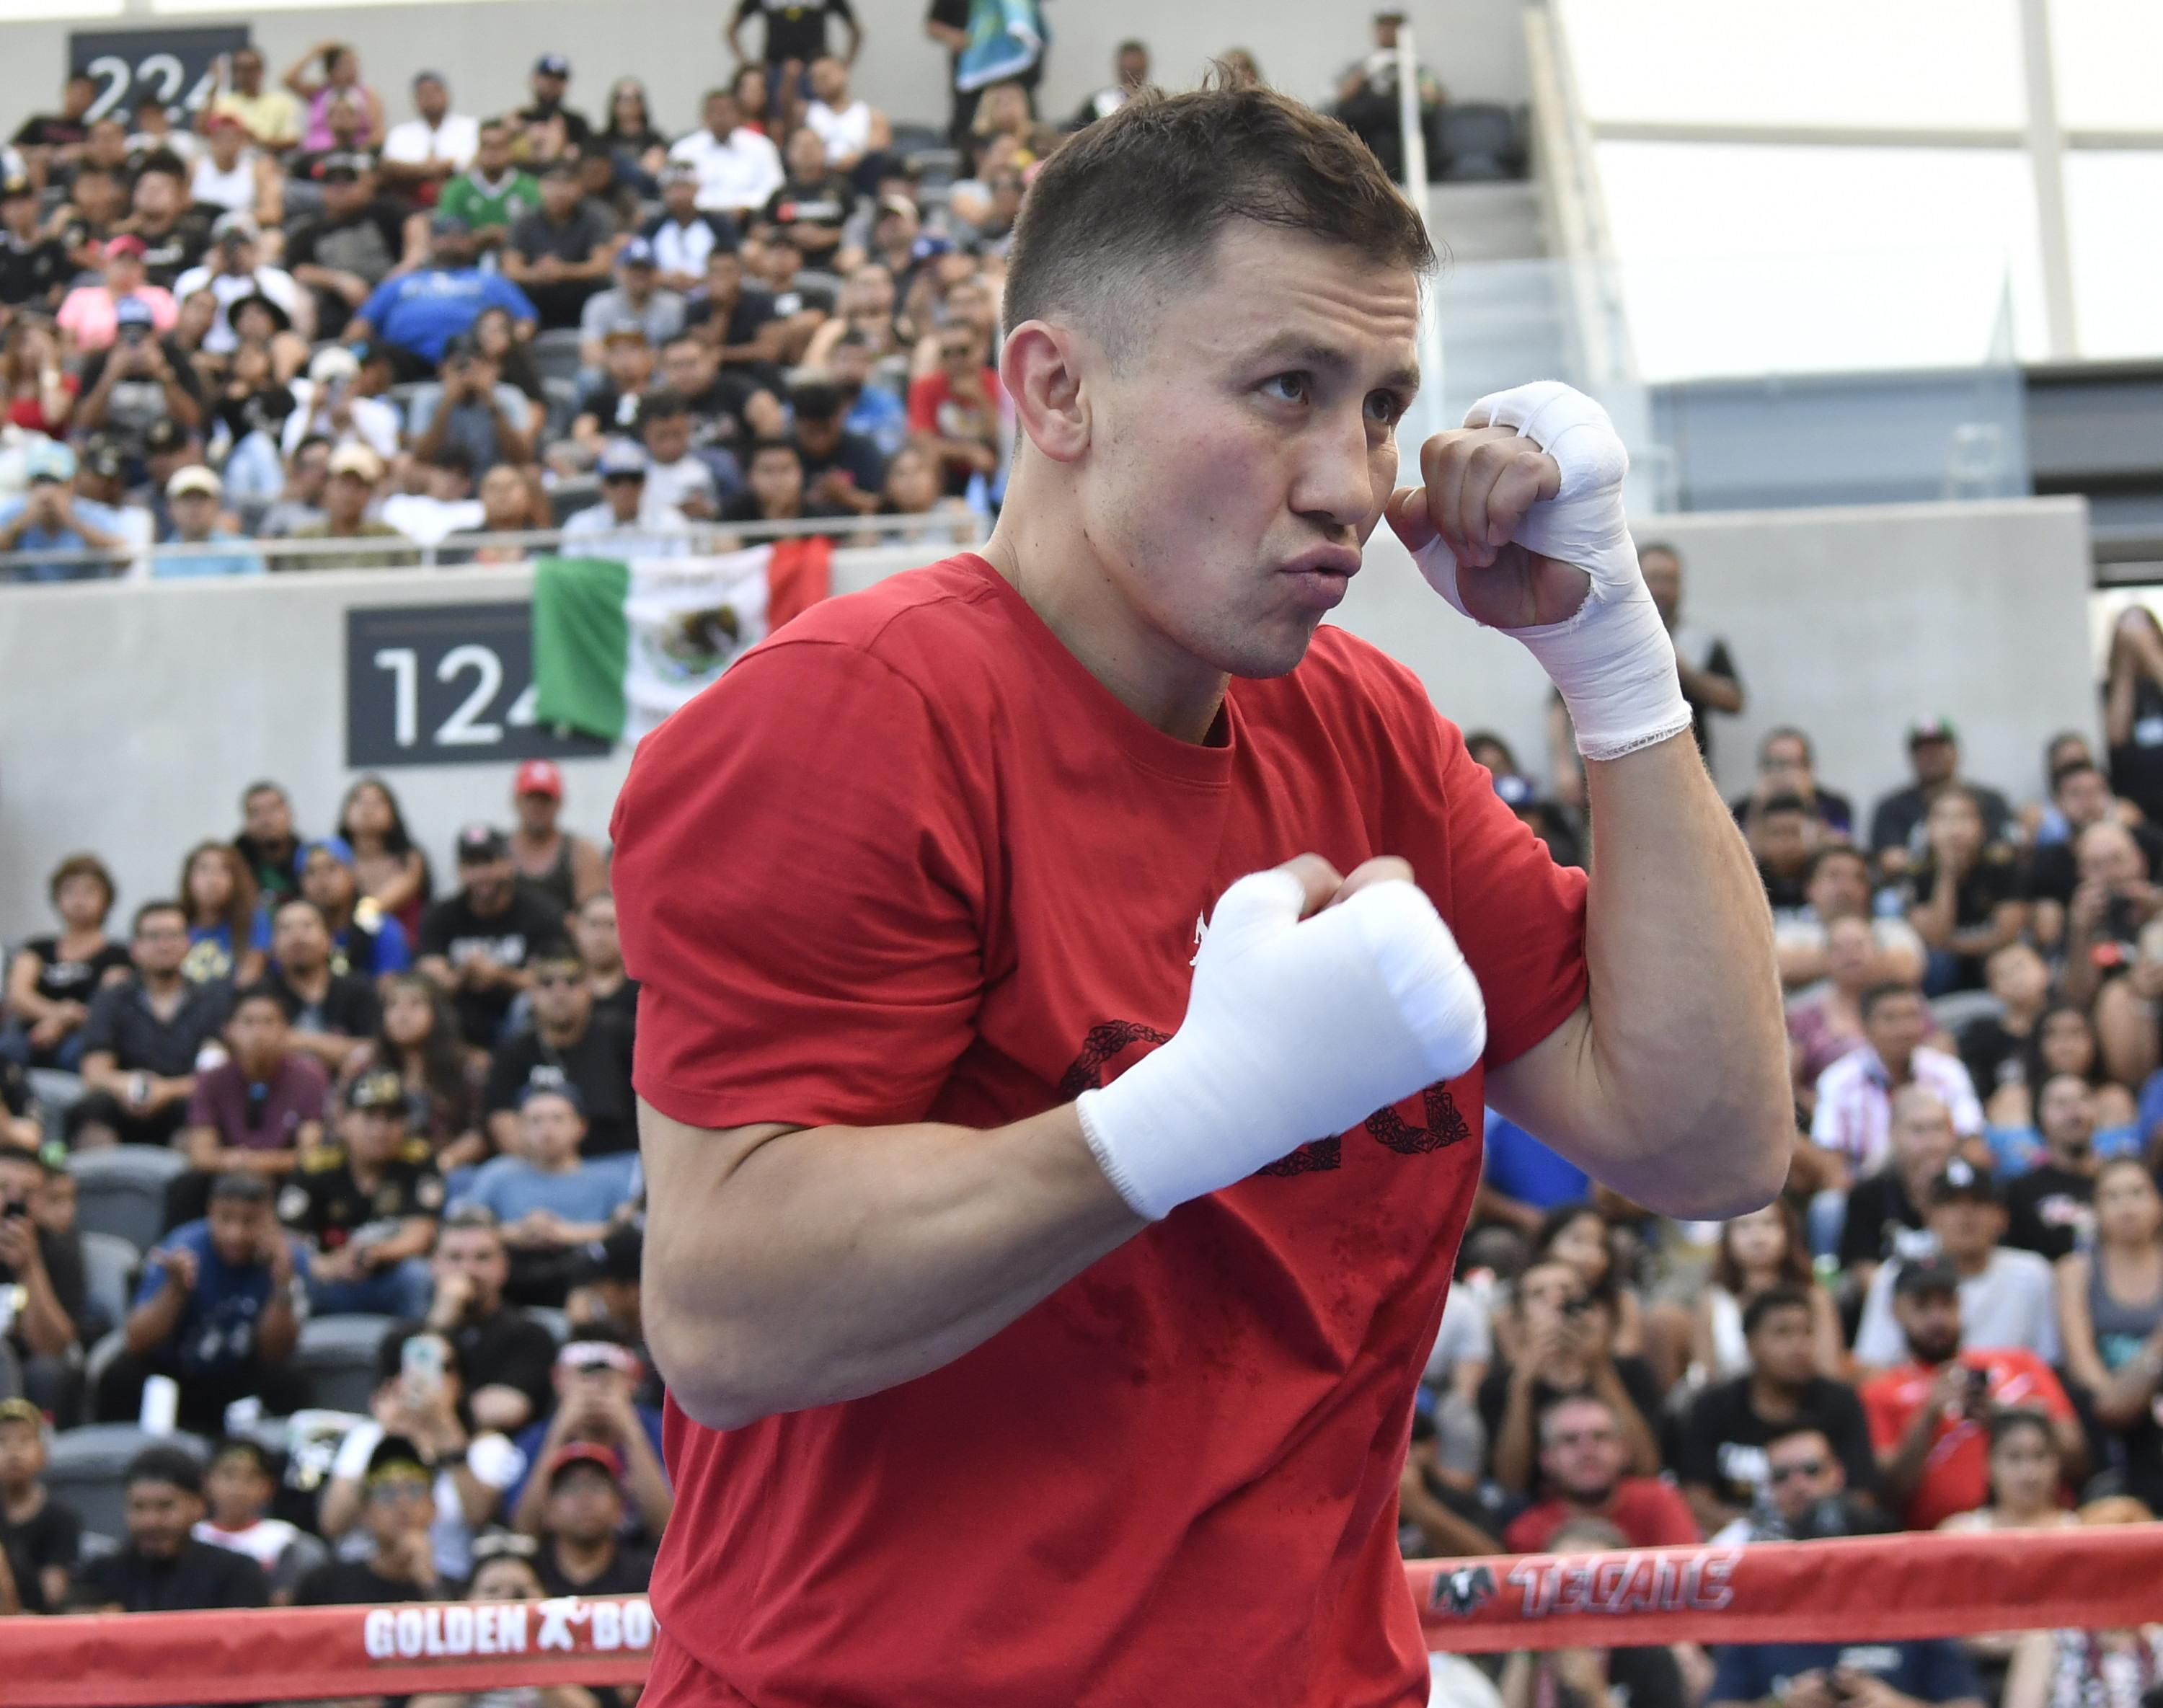 Gennady Golovkin was quick to take the first verbal jab